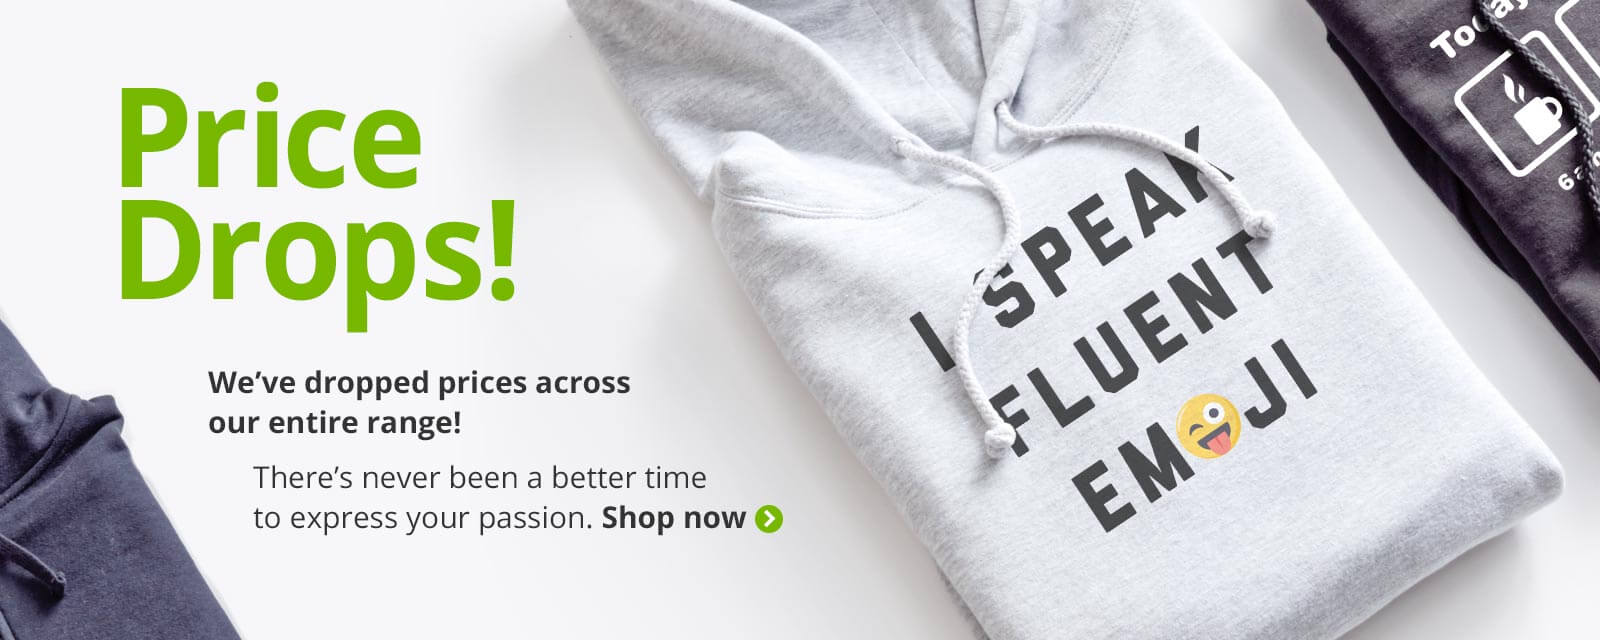 Image of custom printed sweatshirts and hoodies with text that reads: Price Drops! We've droppped out prices across our entire range! There's never been a better time to express your passion. Shop now.